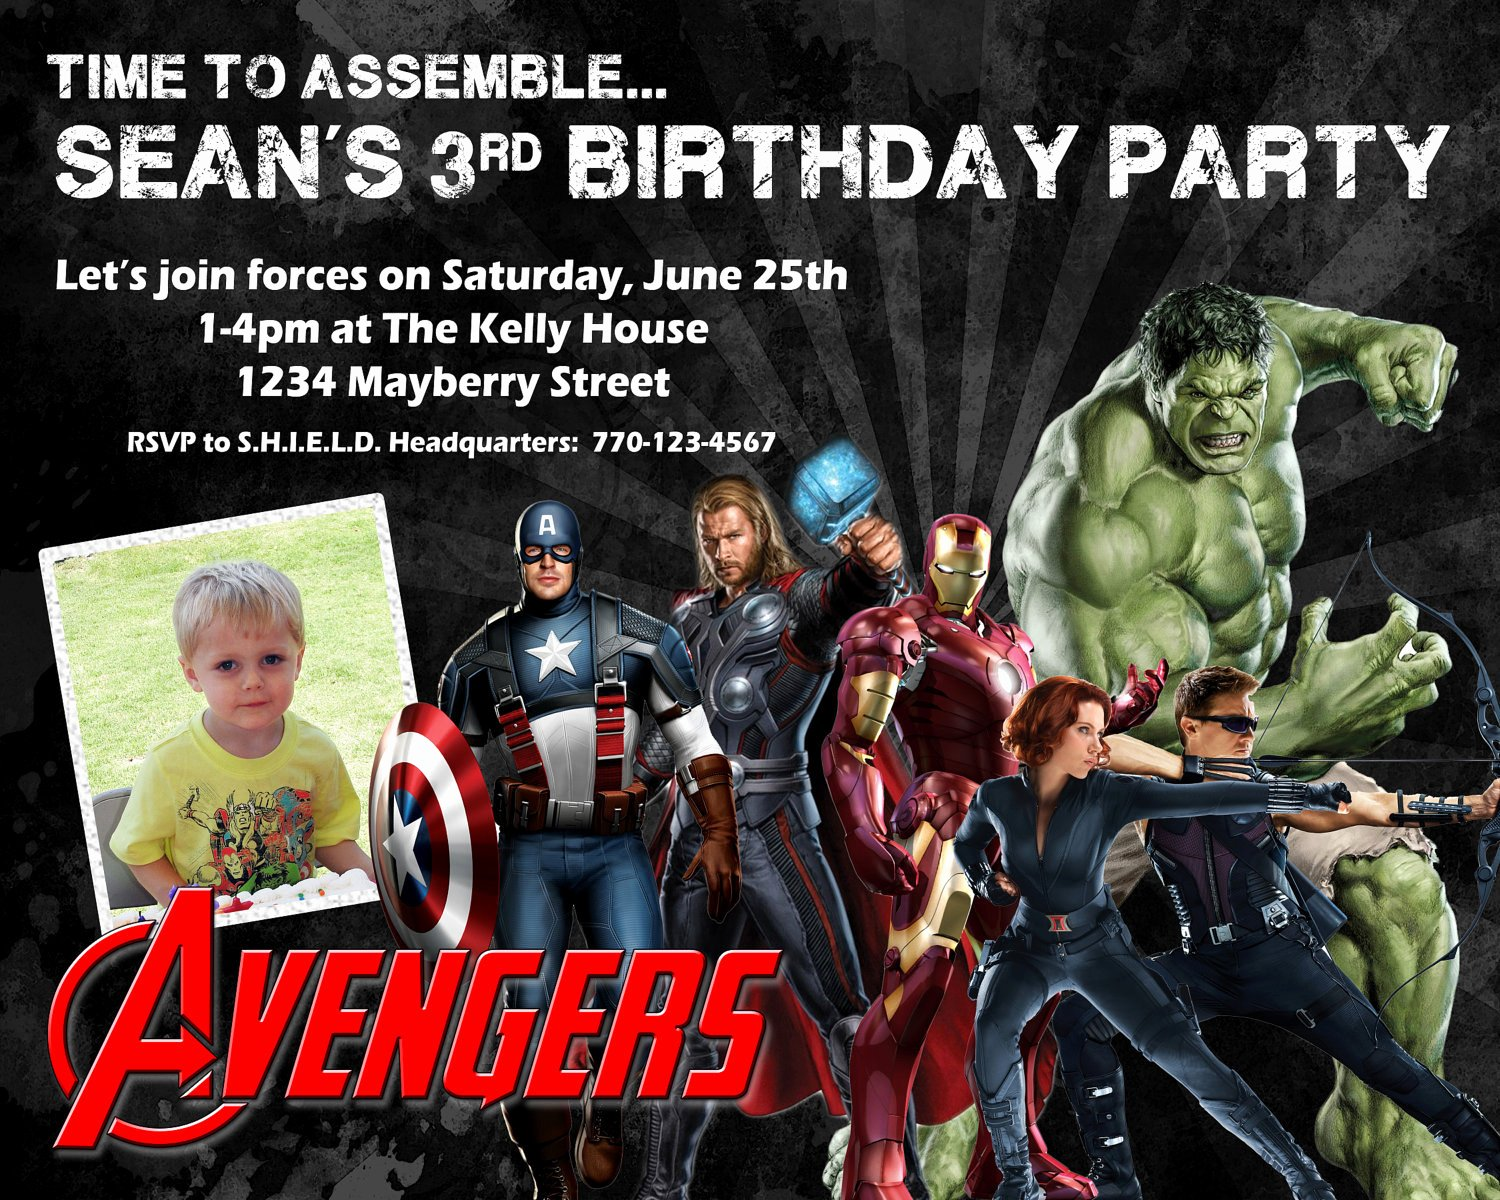 Avengers Invitations Template Free Awesome 40th Birthday Ideas Avengers Birthday Invitation